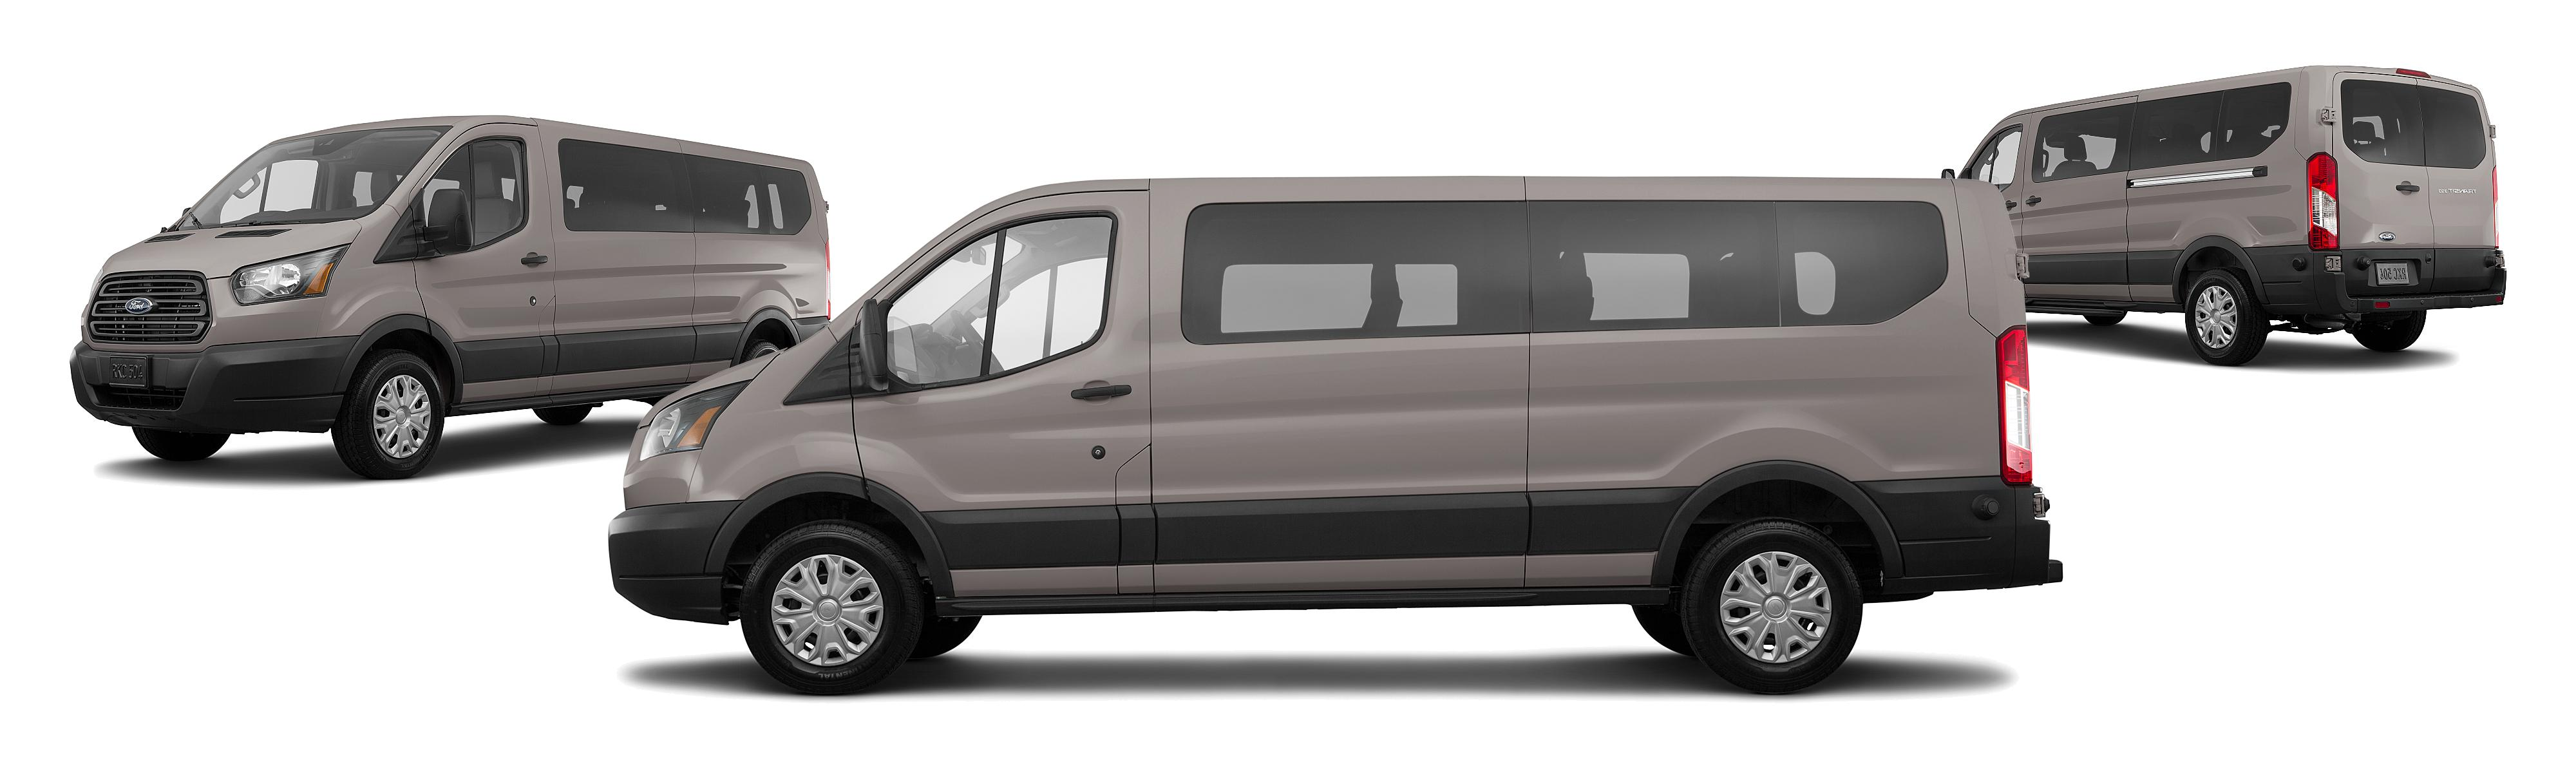 a53d4477cf 2018 Ford Transit Passenger 350 XL 3dr LWB High Roof Passenger Van  w Sliding Passenger Side Door - Research - GrooveCar